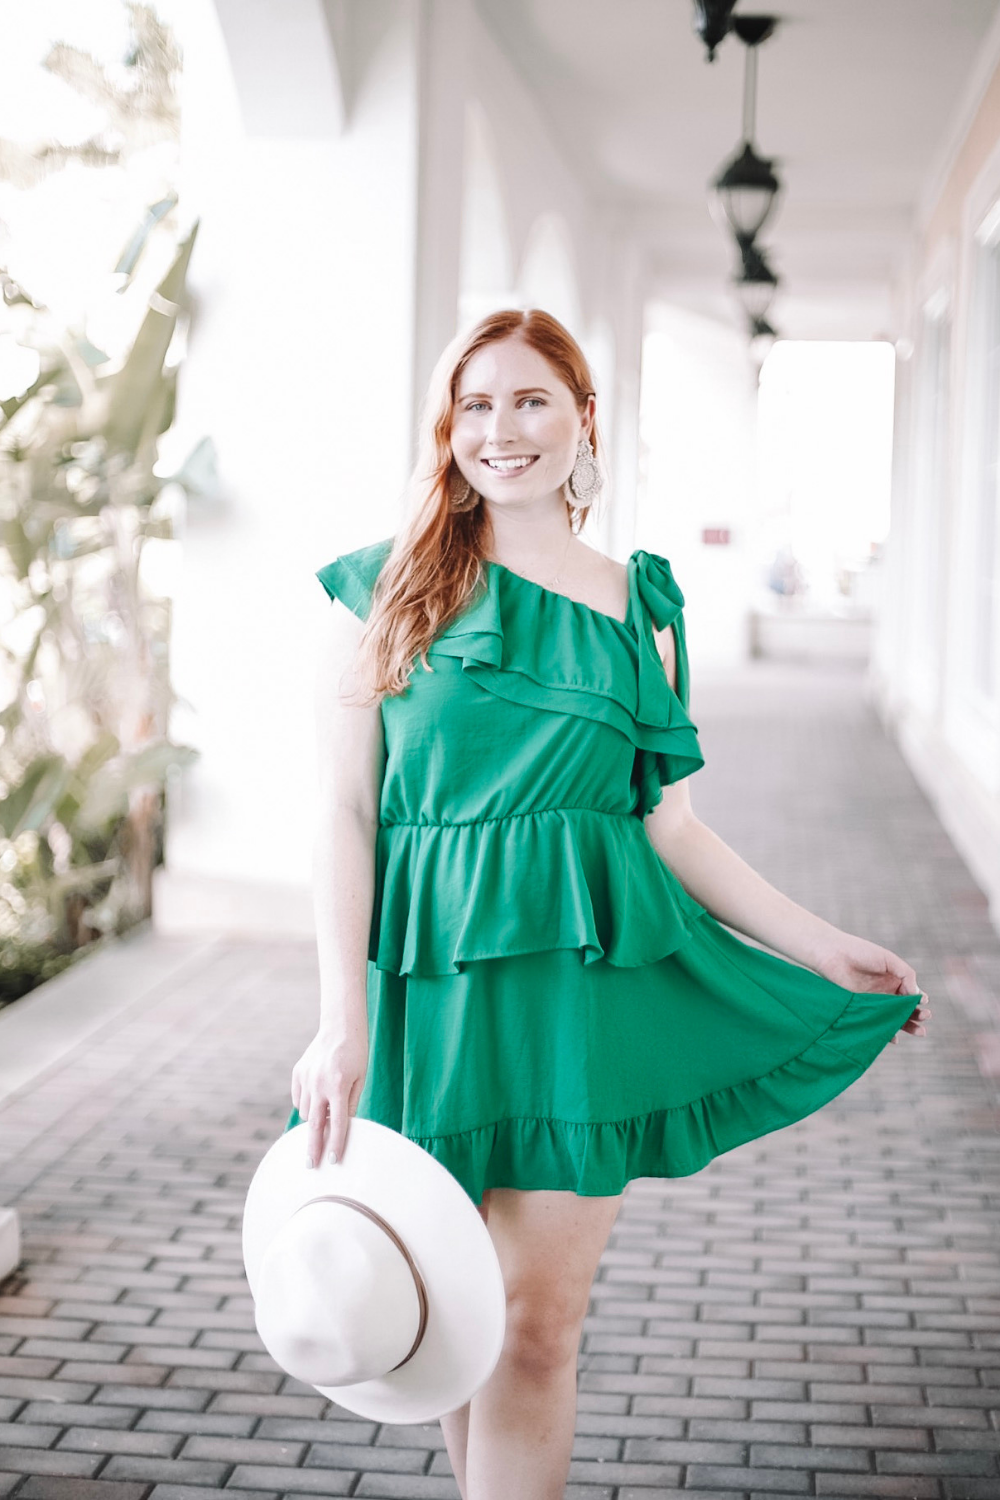 Ultimate Bermuda Travel Guide - Tampa Blogger Amanda Burrows of Affordable by Amanda Shares What to Do and What to Experience in Bermuda. Hamilton Princess Hotel and Resort.